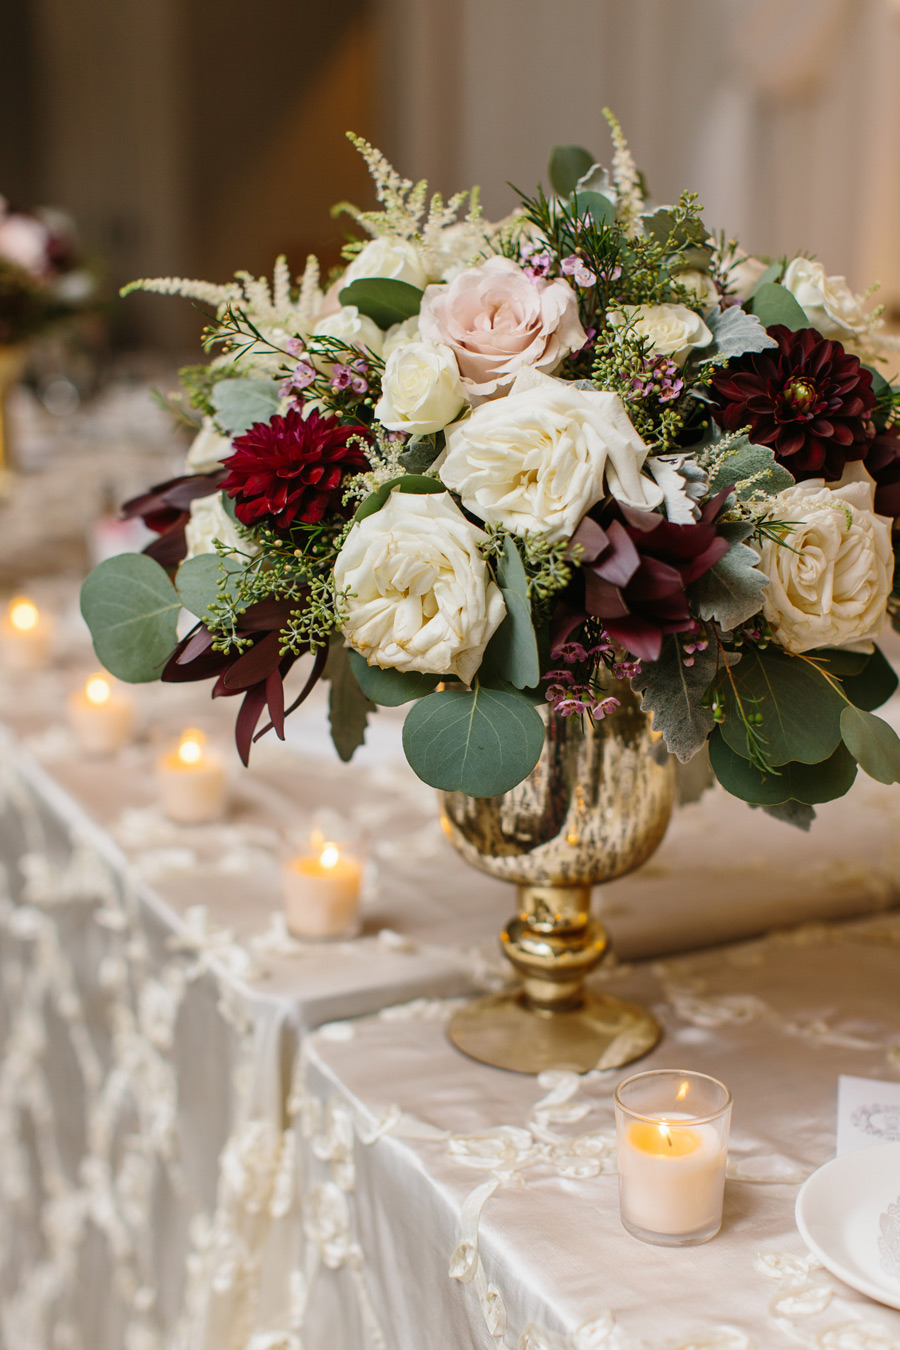 Stephen-Michlyn-Reception-Details-0076